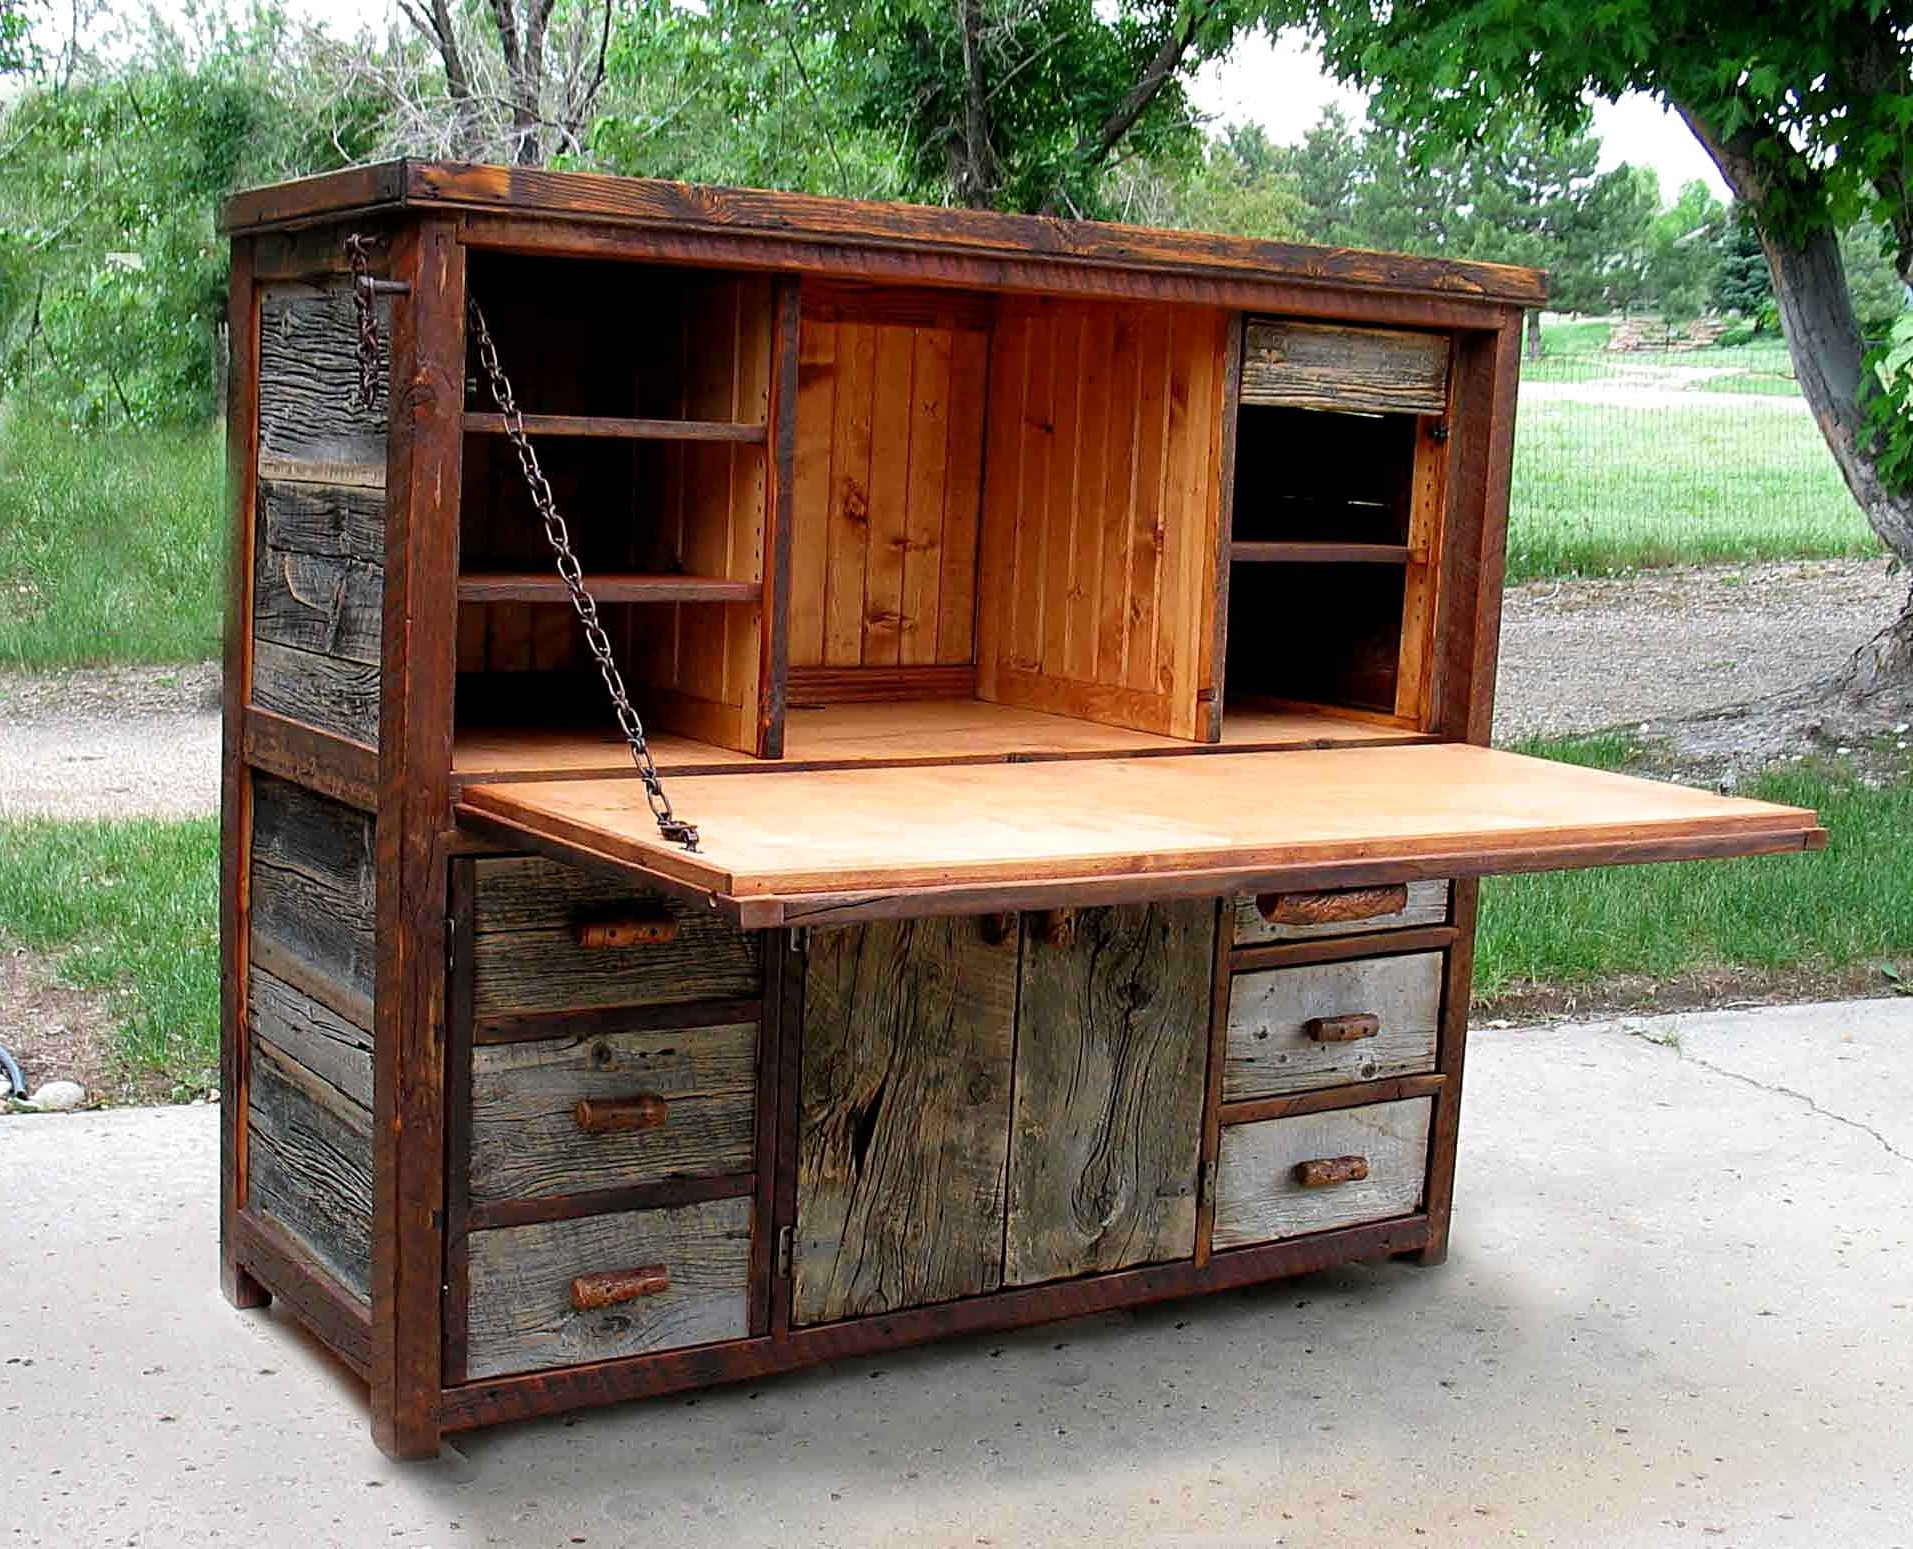 Rustic Barnwood Desks – Computer, Fold Down, And Seven Drawer Wood Inside Most Recently Released Rustic Computer Desks (Gallery 12 of 20)